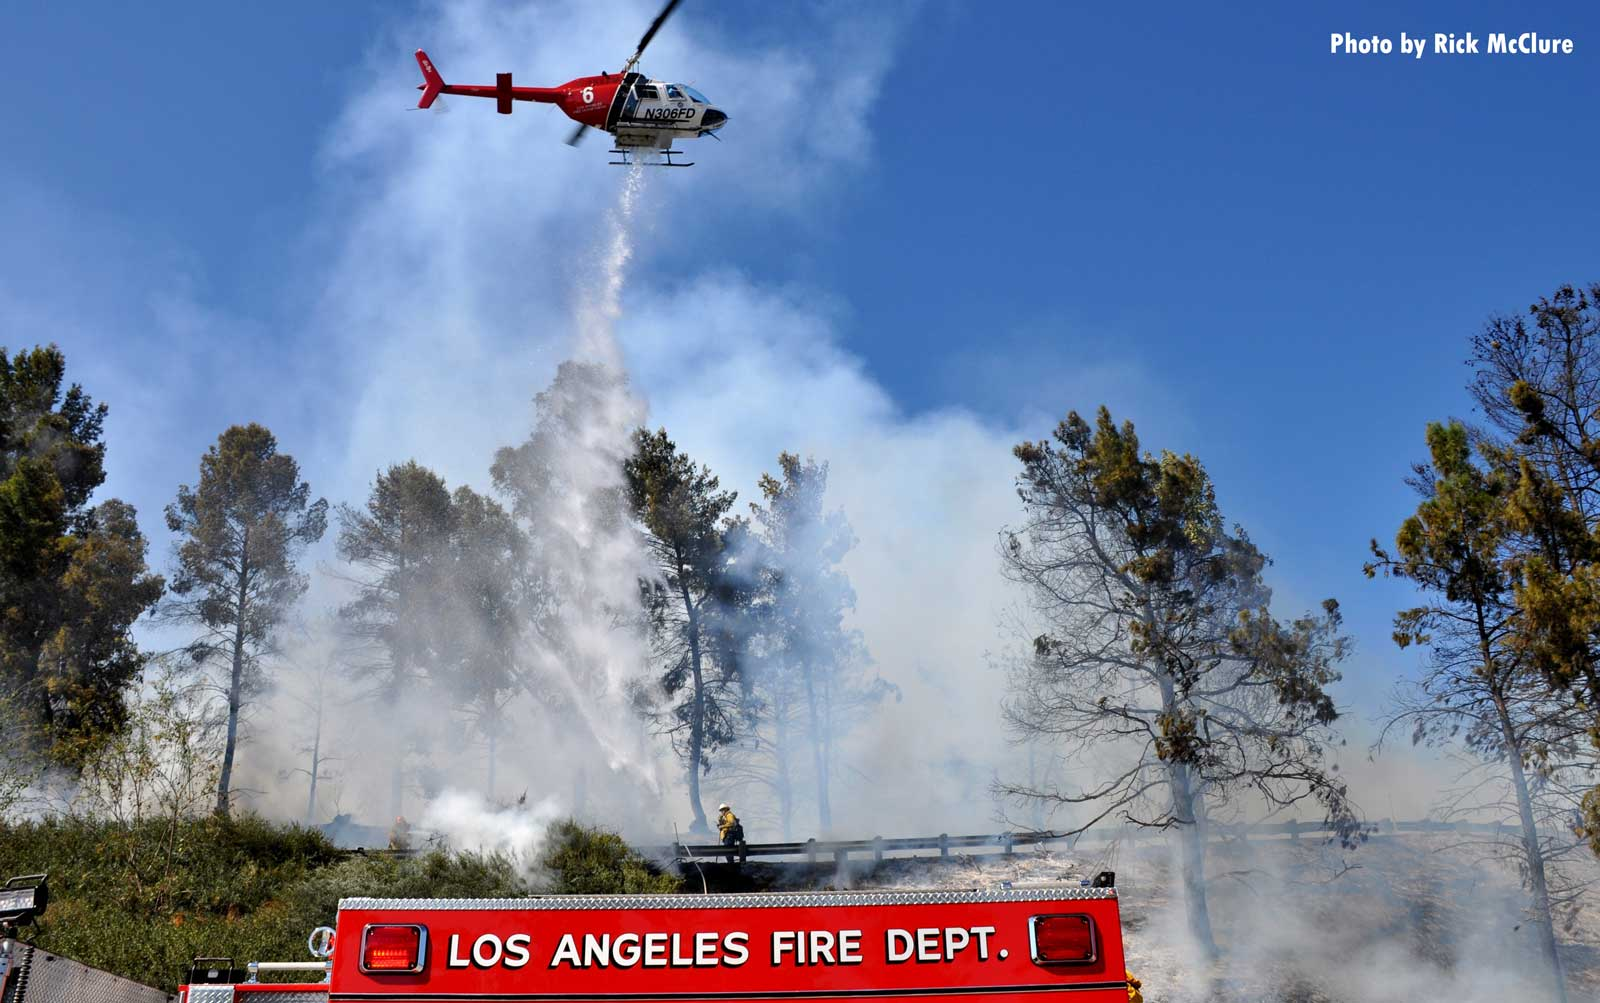 Helicopter at scene of smoky California brush fire